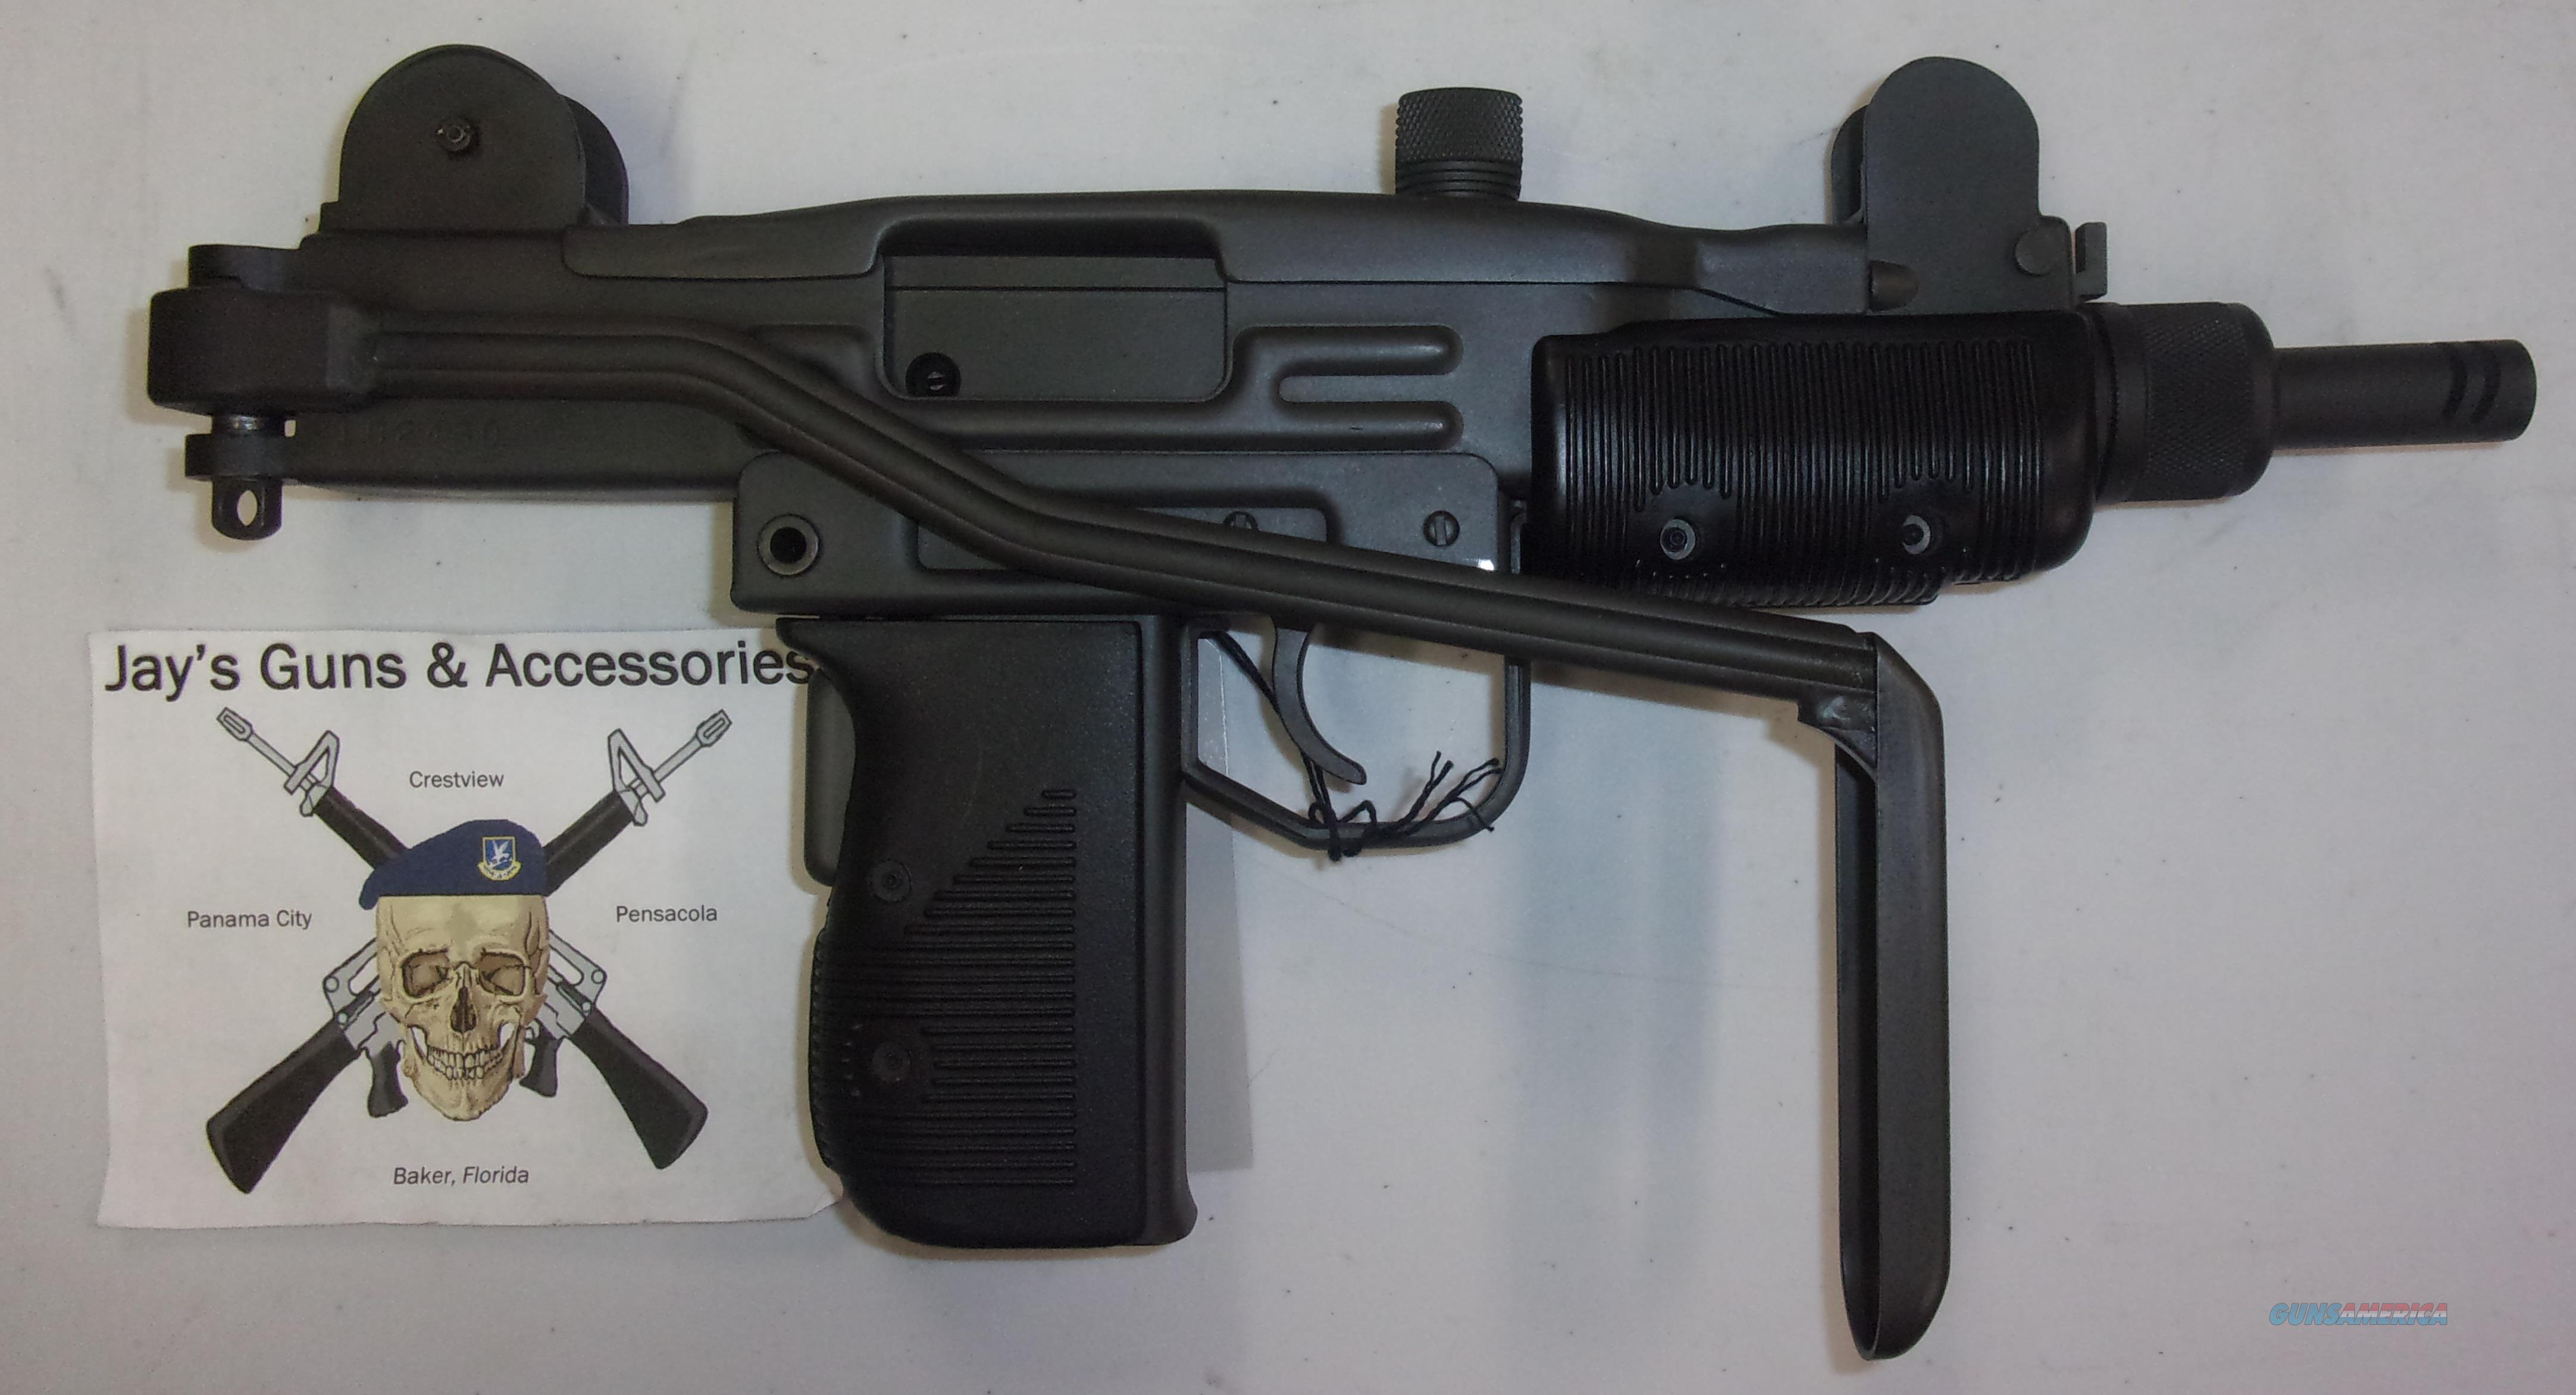 Group Industries HR4332 Mini Uzi ***FULL AUTO SUBMACHINE GUN***  Guns > Pistols > Class 3 Pistols > Class 3 Subguns